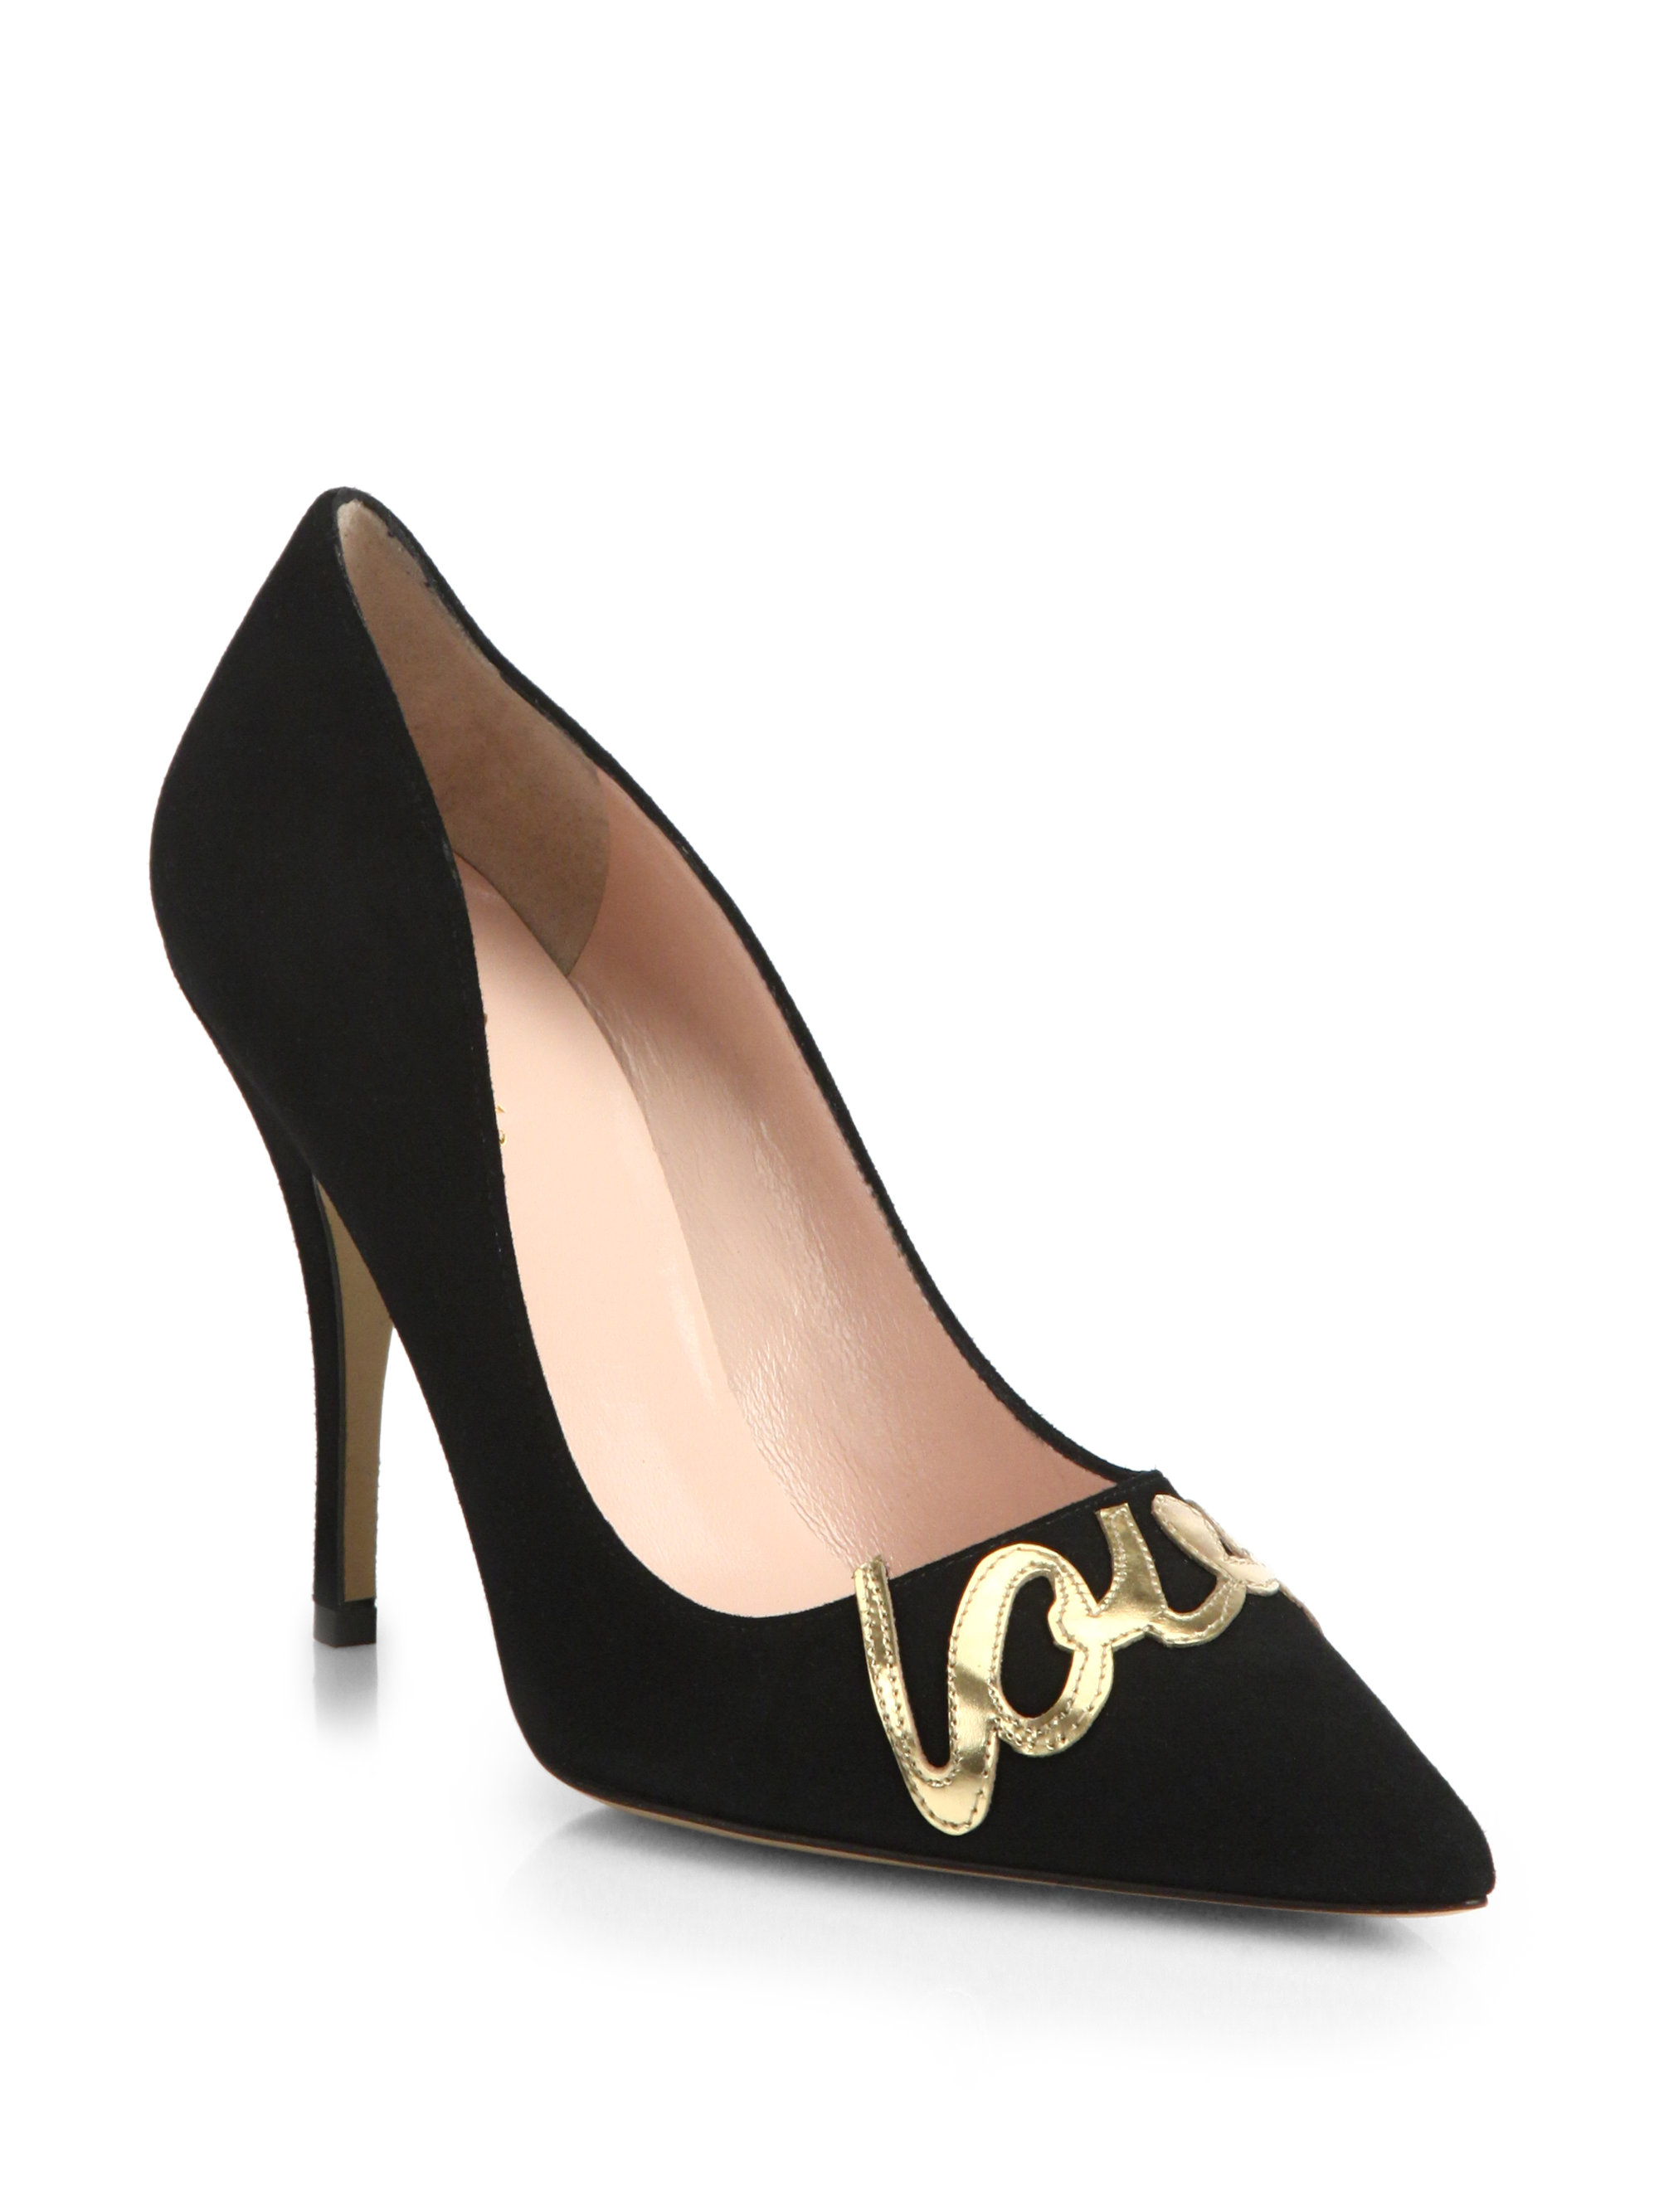 Lyst Kate Spade New York Love Suede Pointy Toe Pumps In